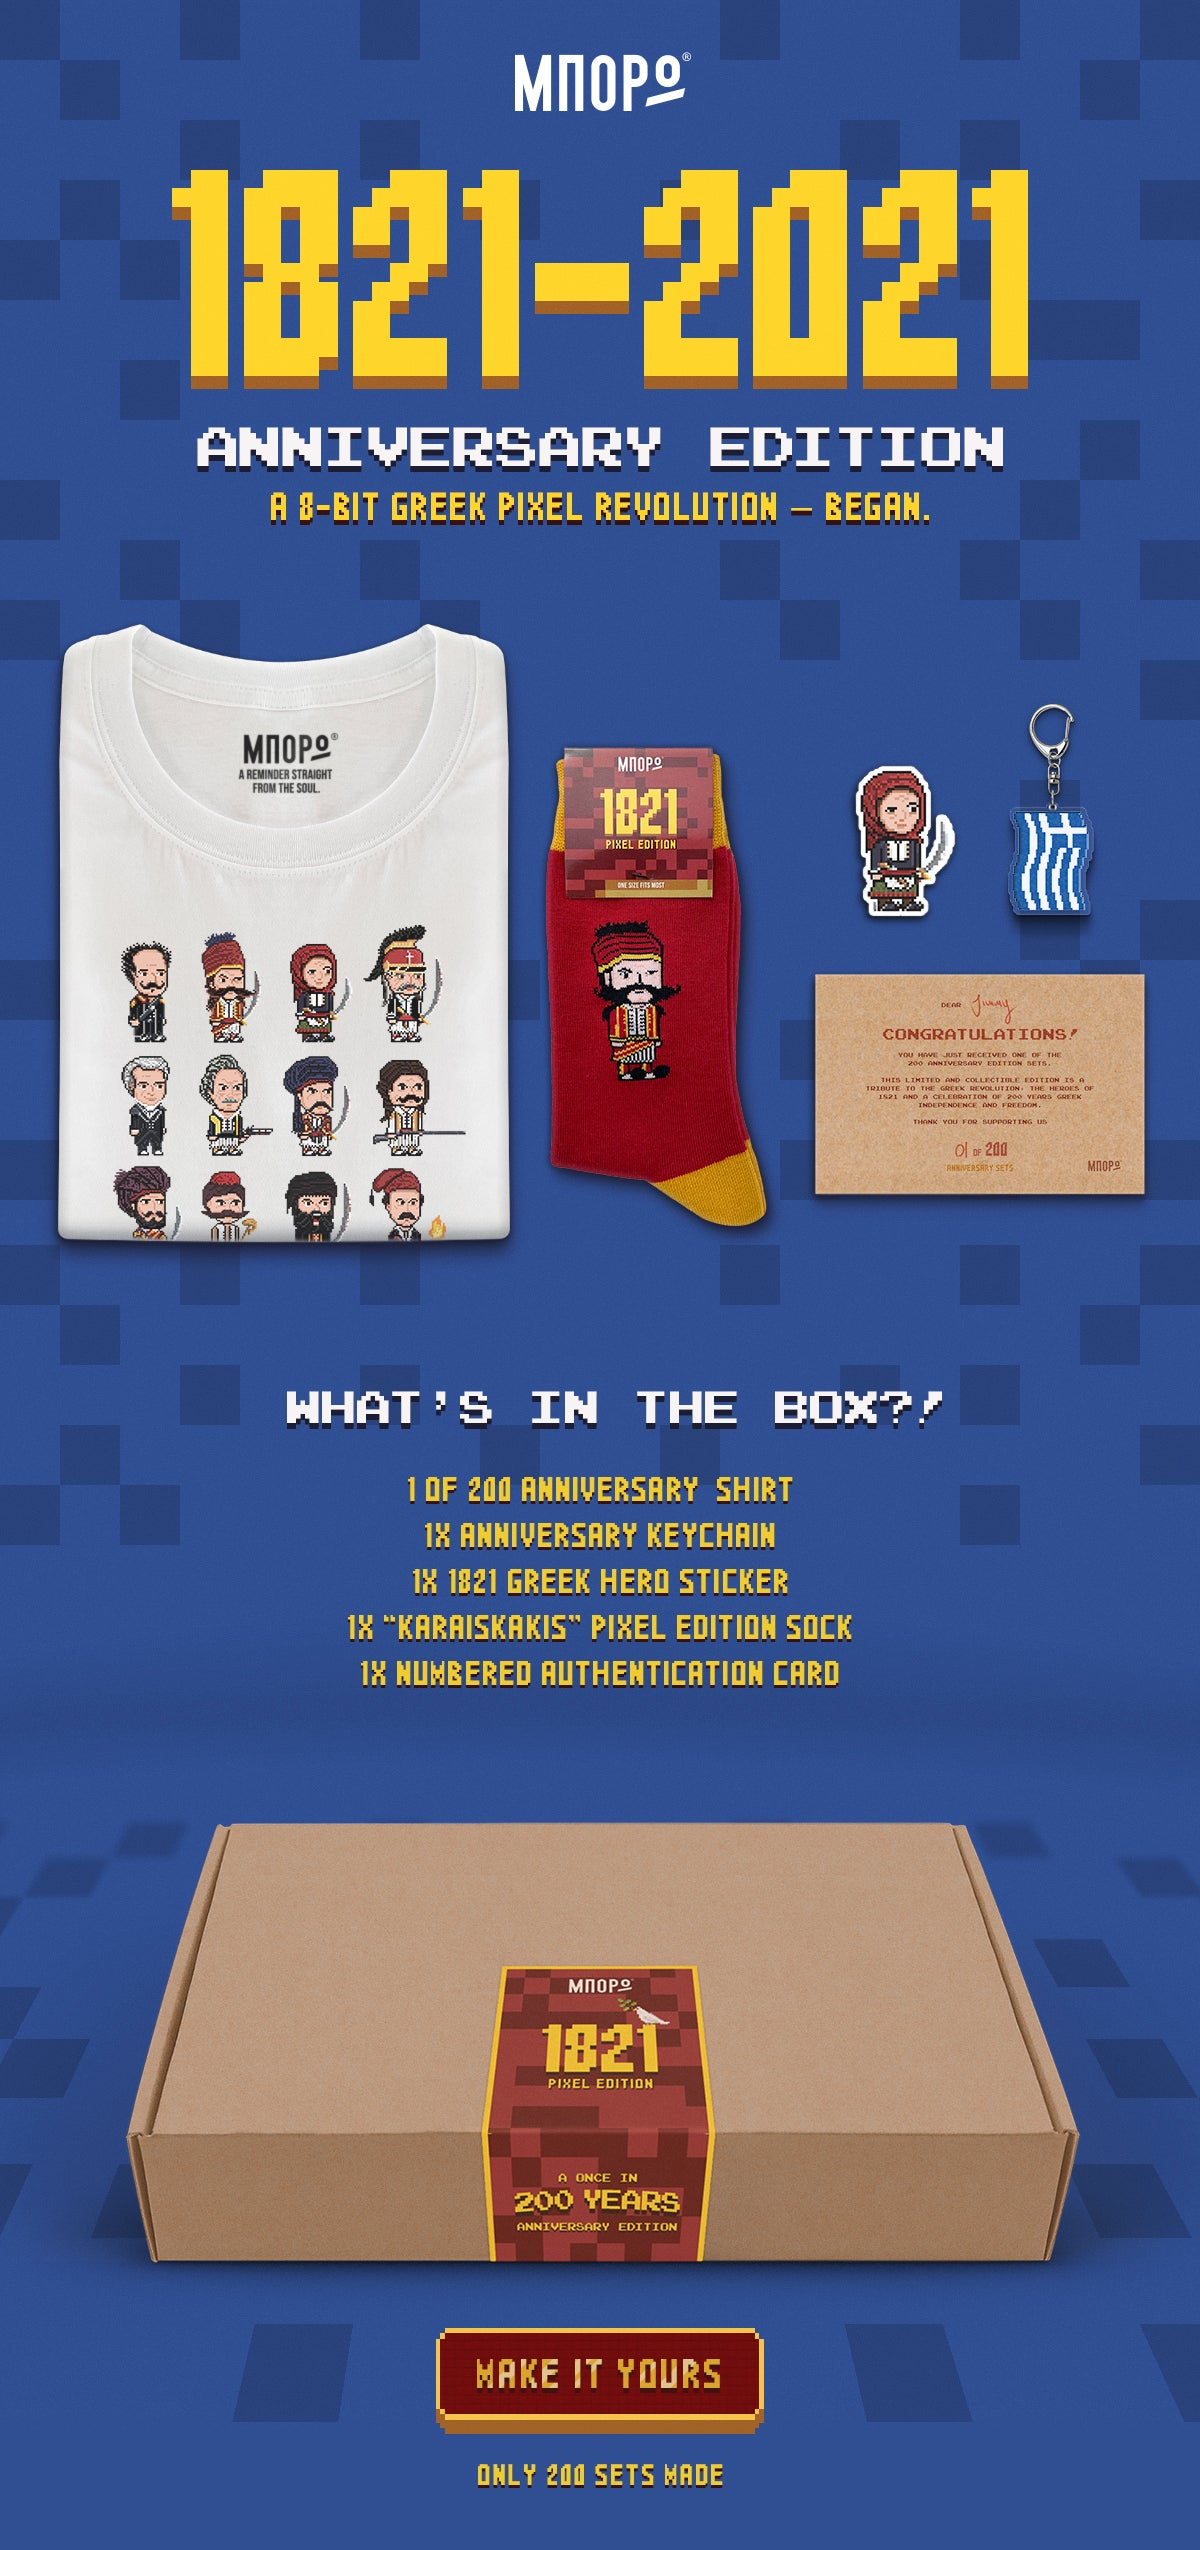 1821-2021 anniversary limited edition pixel art set overview